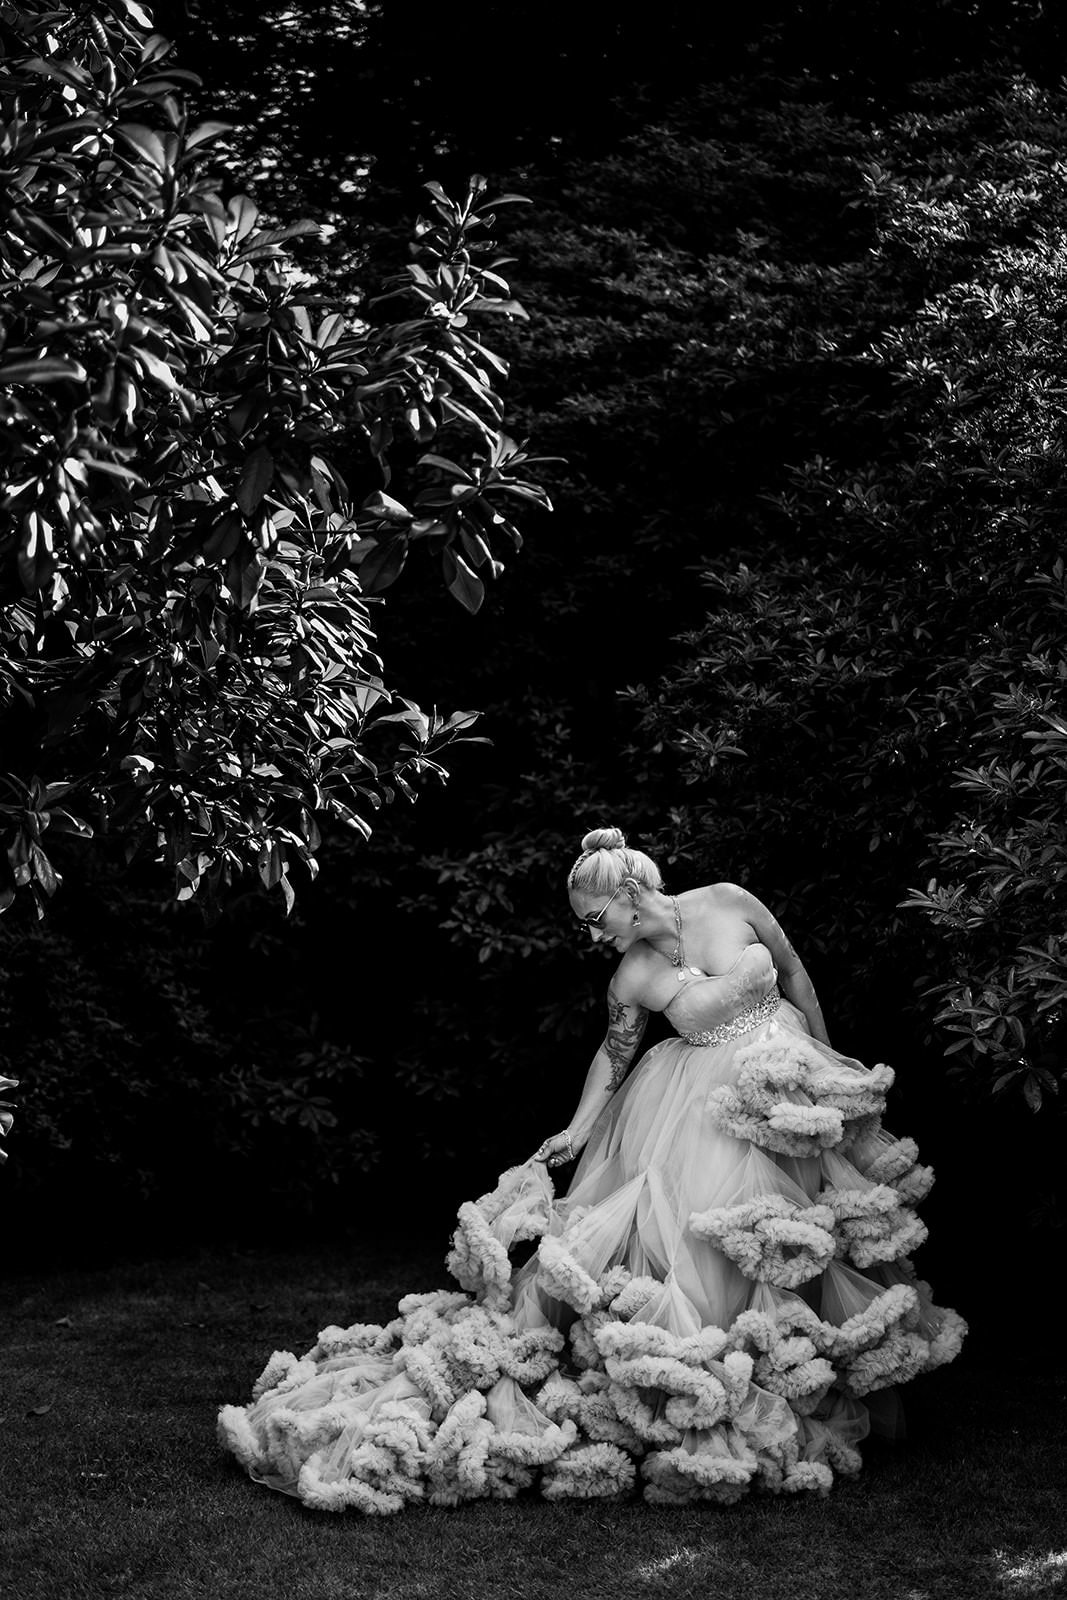 Black and white image of bride in big wedding dress